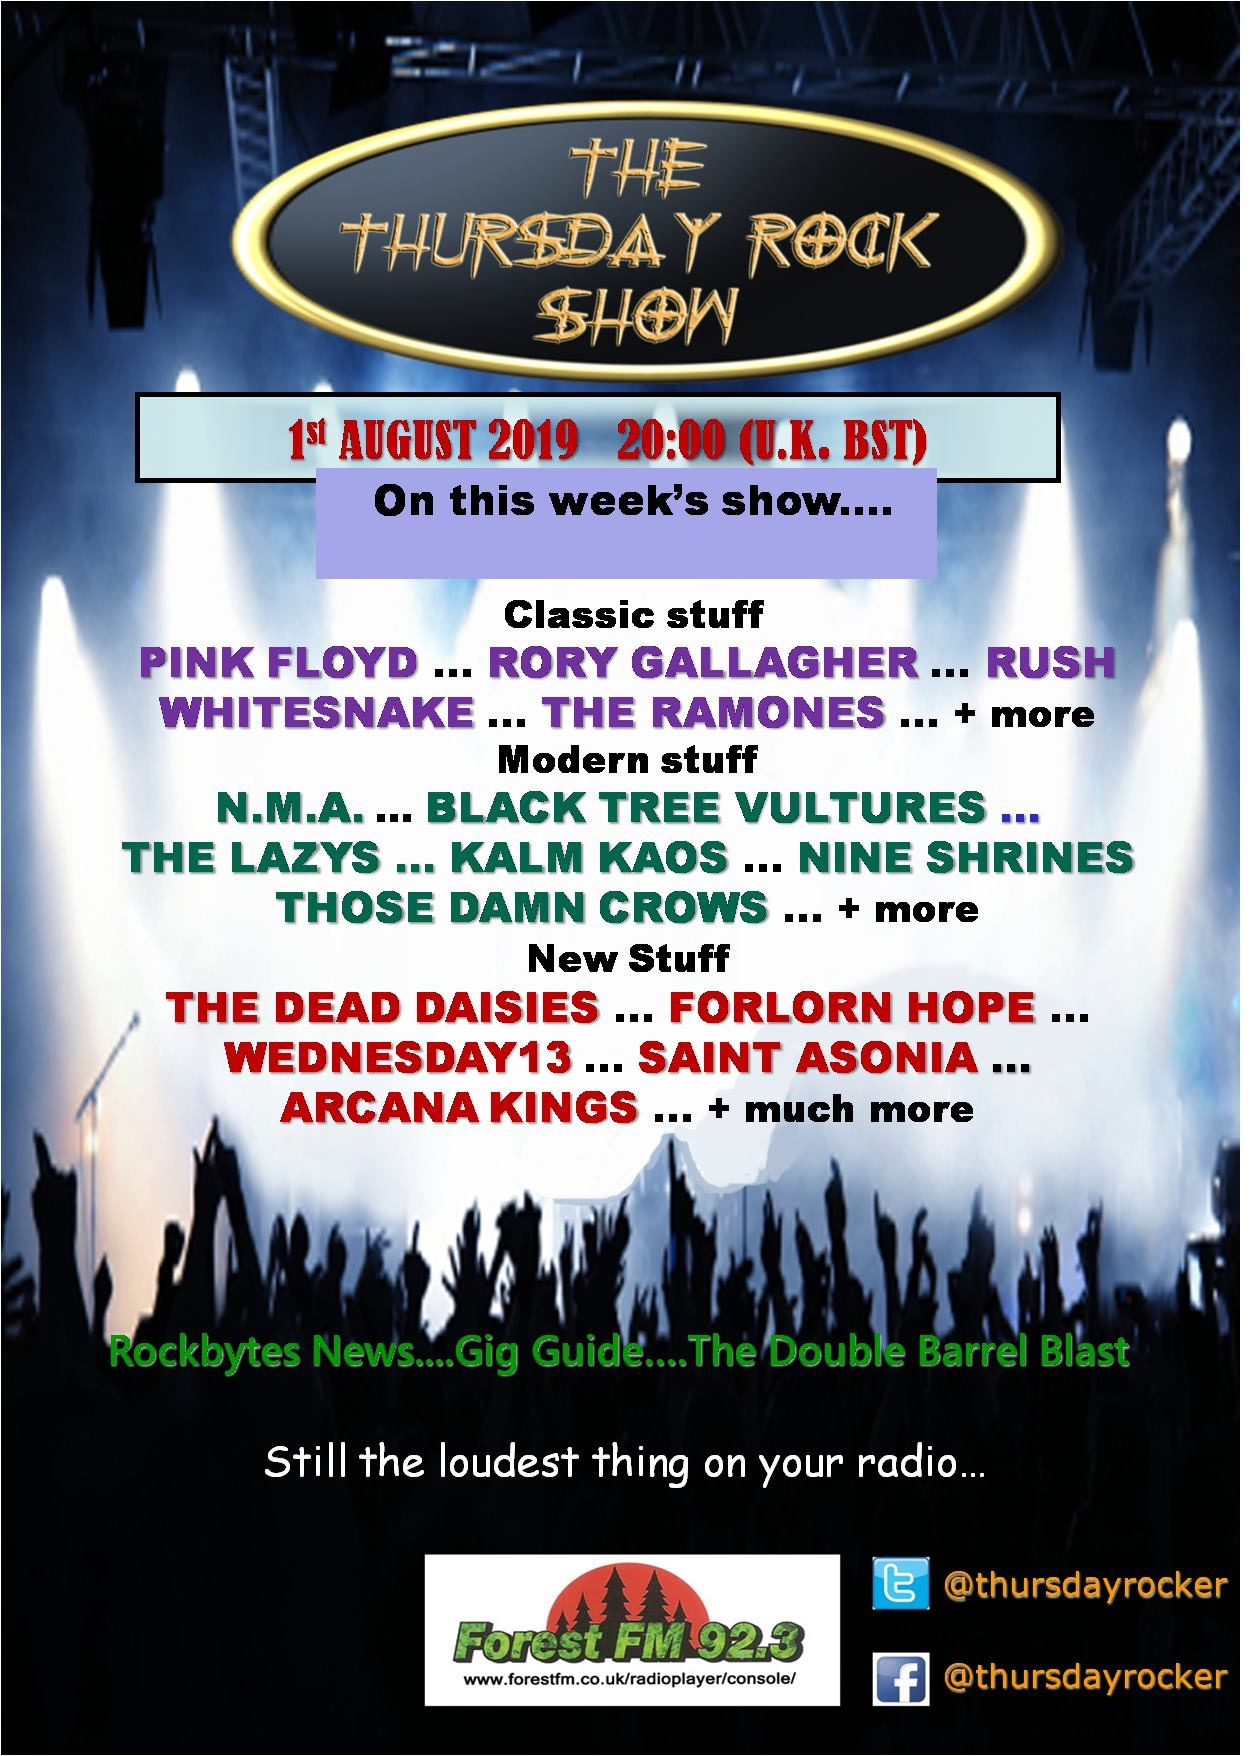 thursday-rock-show.jpeg